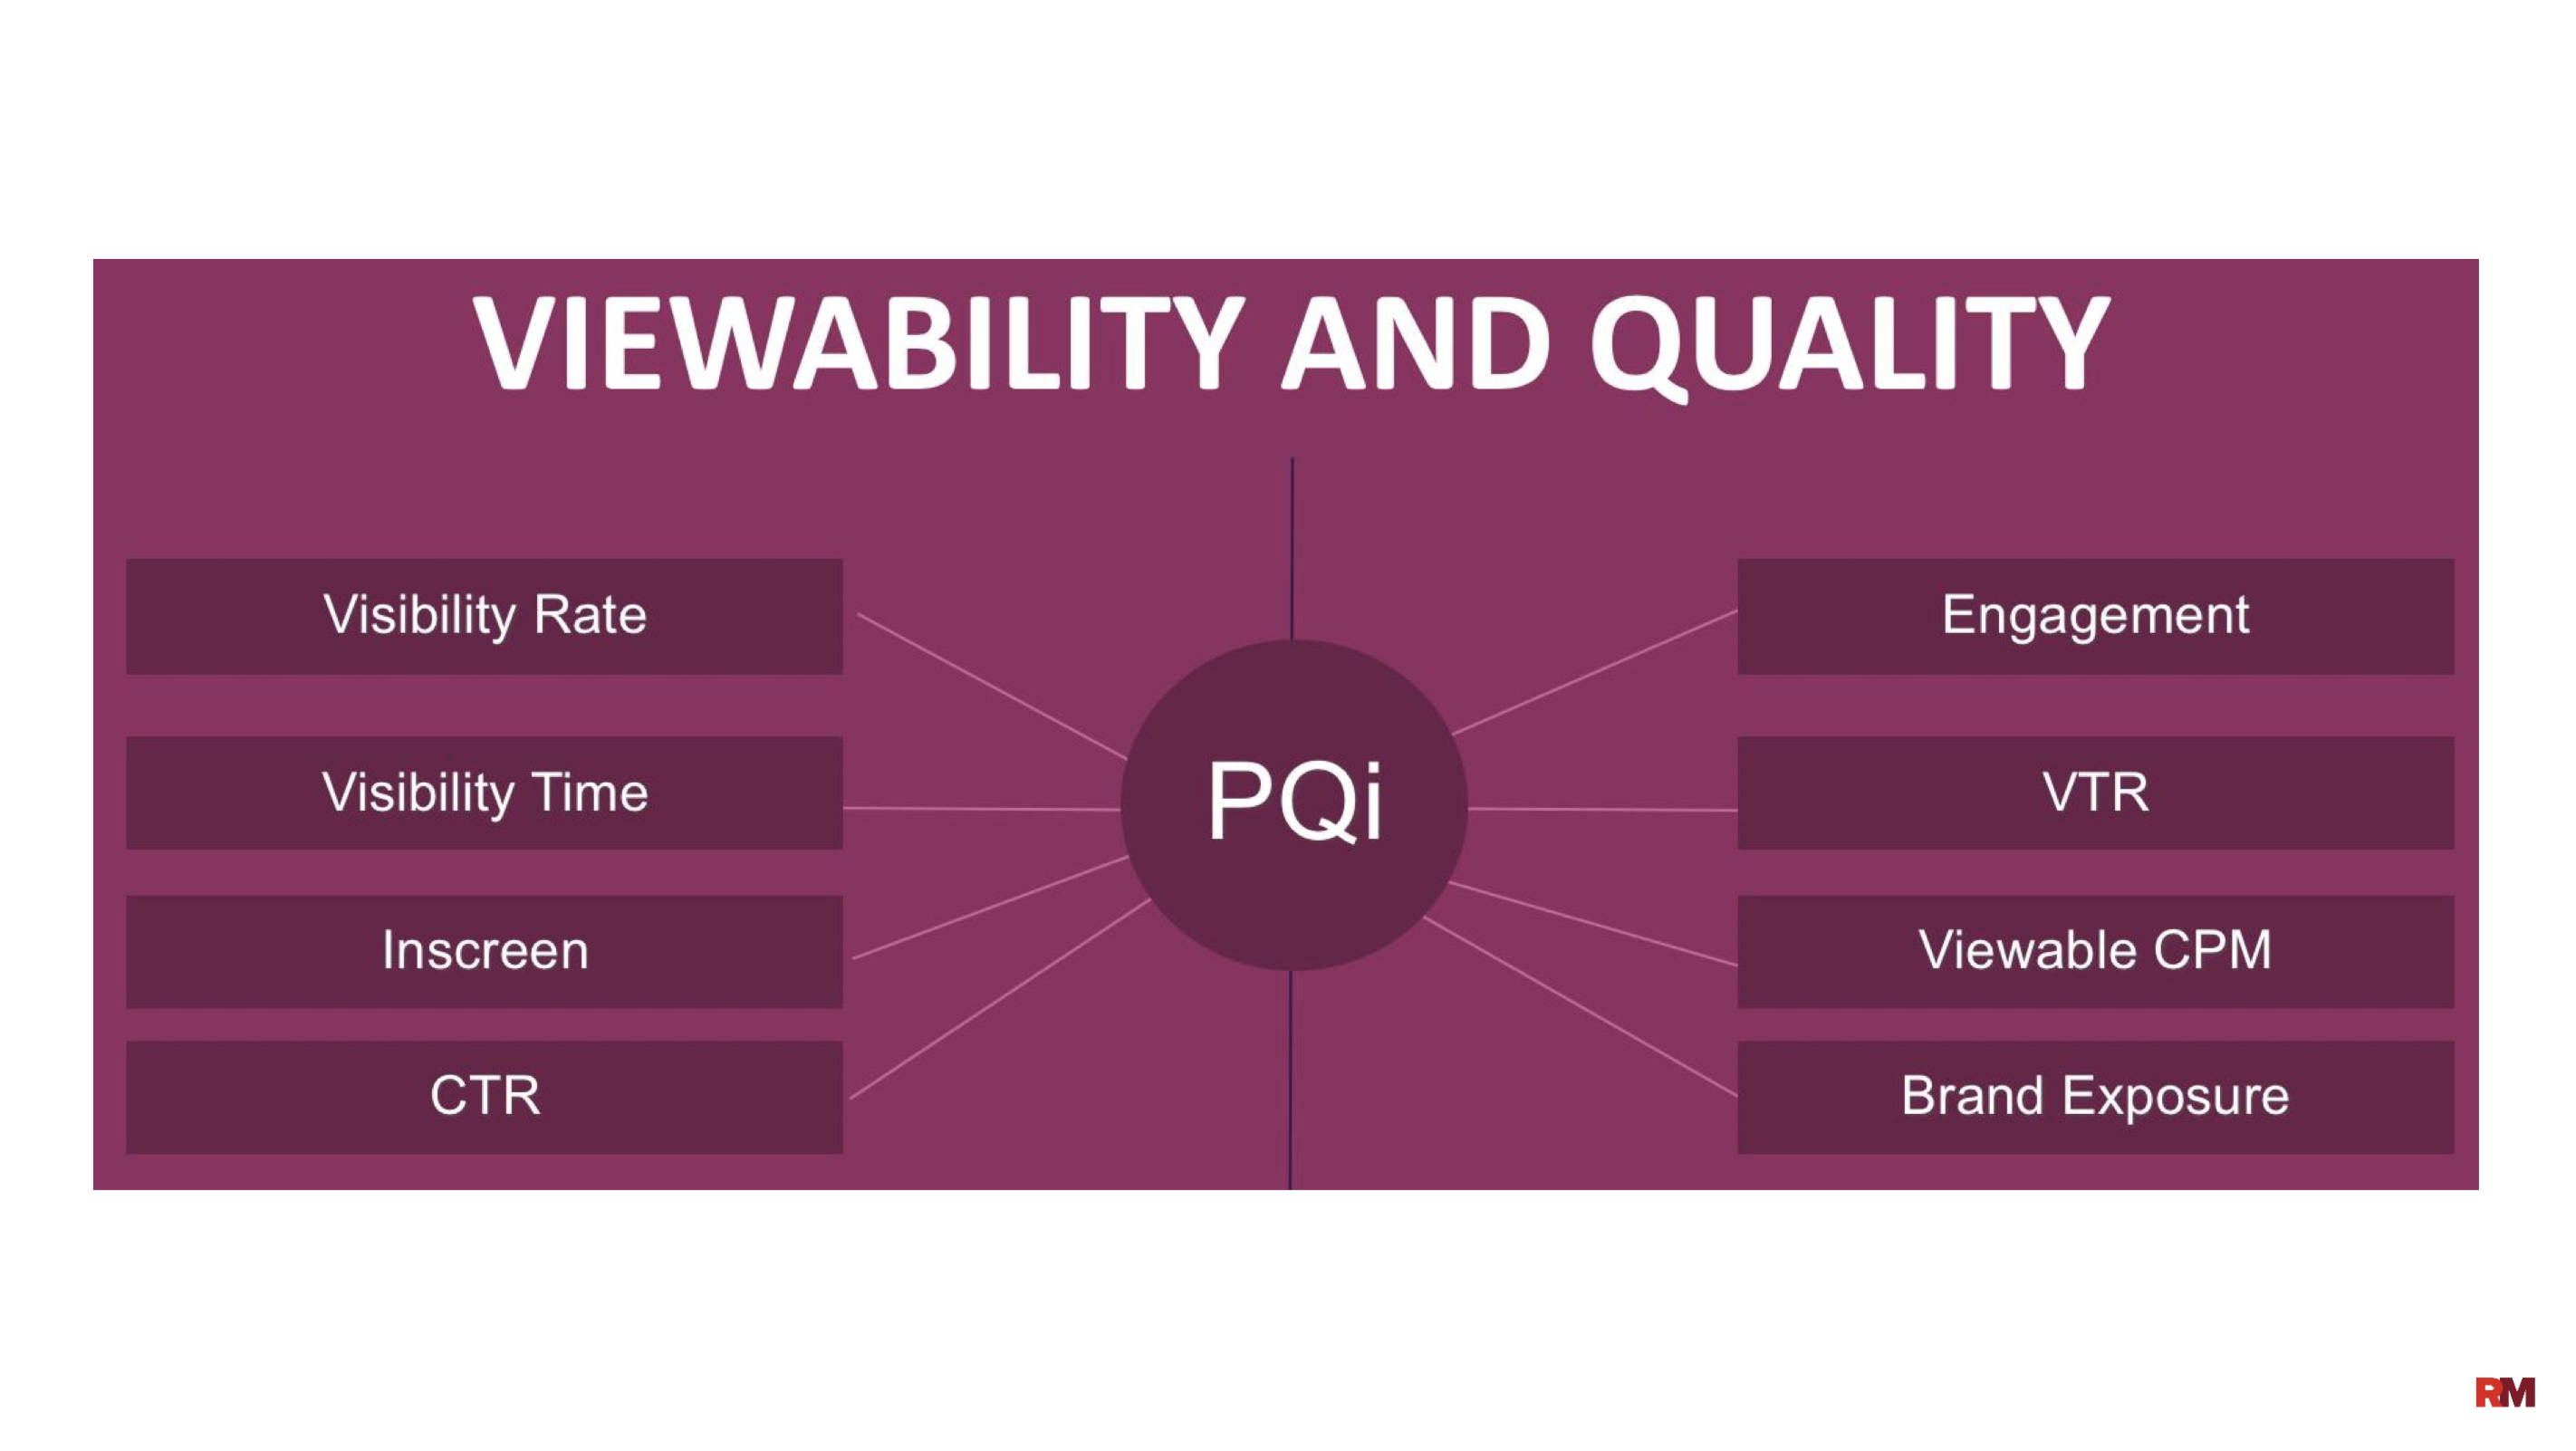 Viewability and Quality